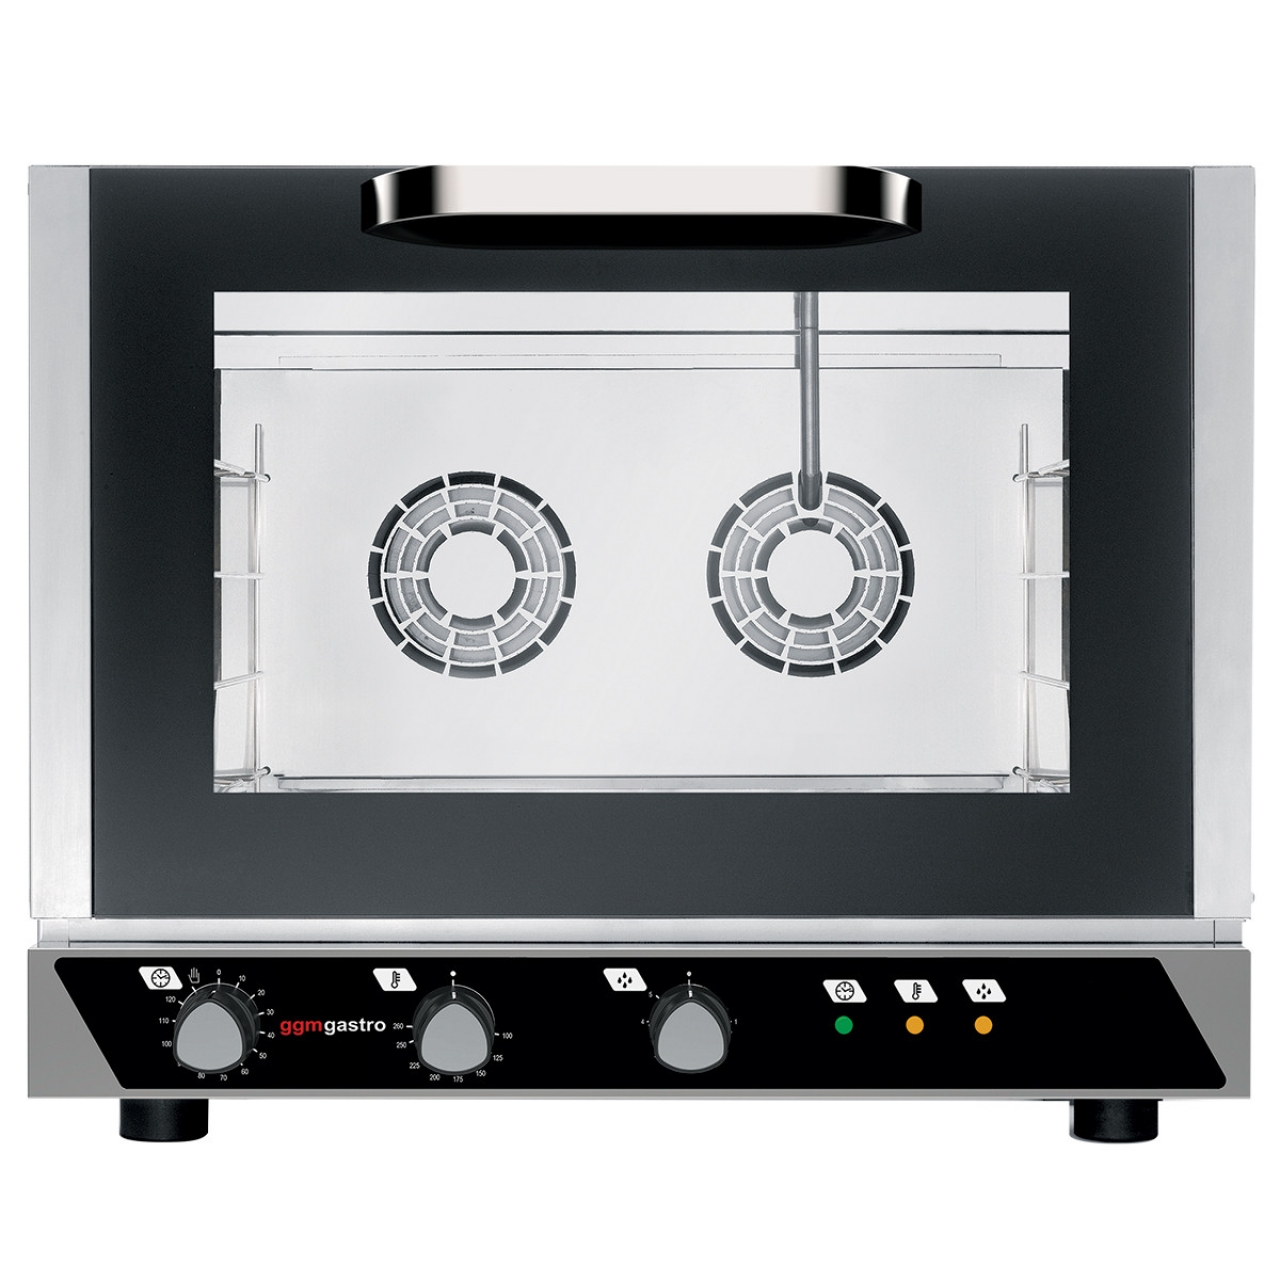 convection with steam 4x60x40